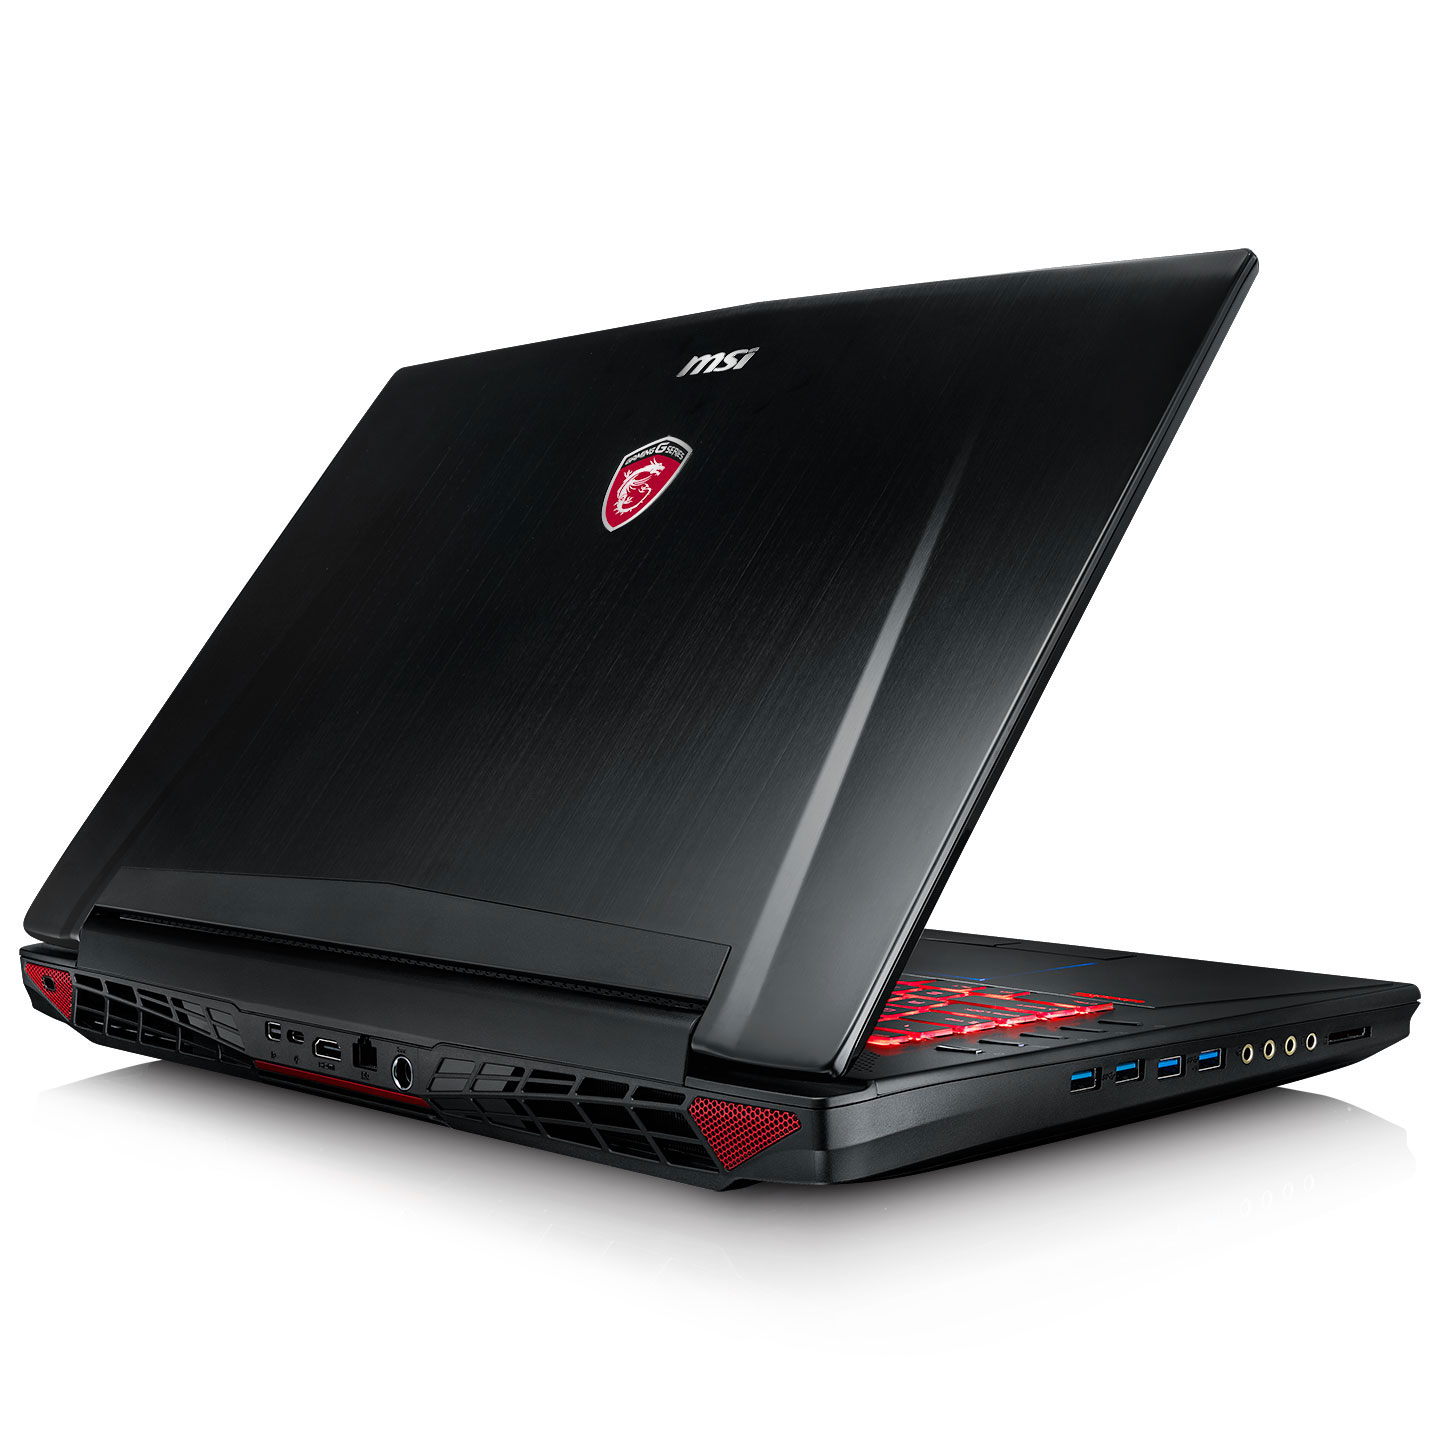 msi gt72s 6qd 089xfr dominator g sac dos msi gaming. Black Bedroom Furniture Sets. Home Design Ideas